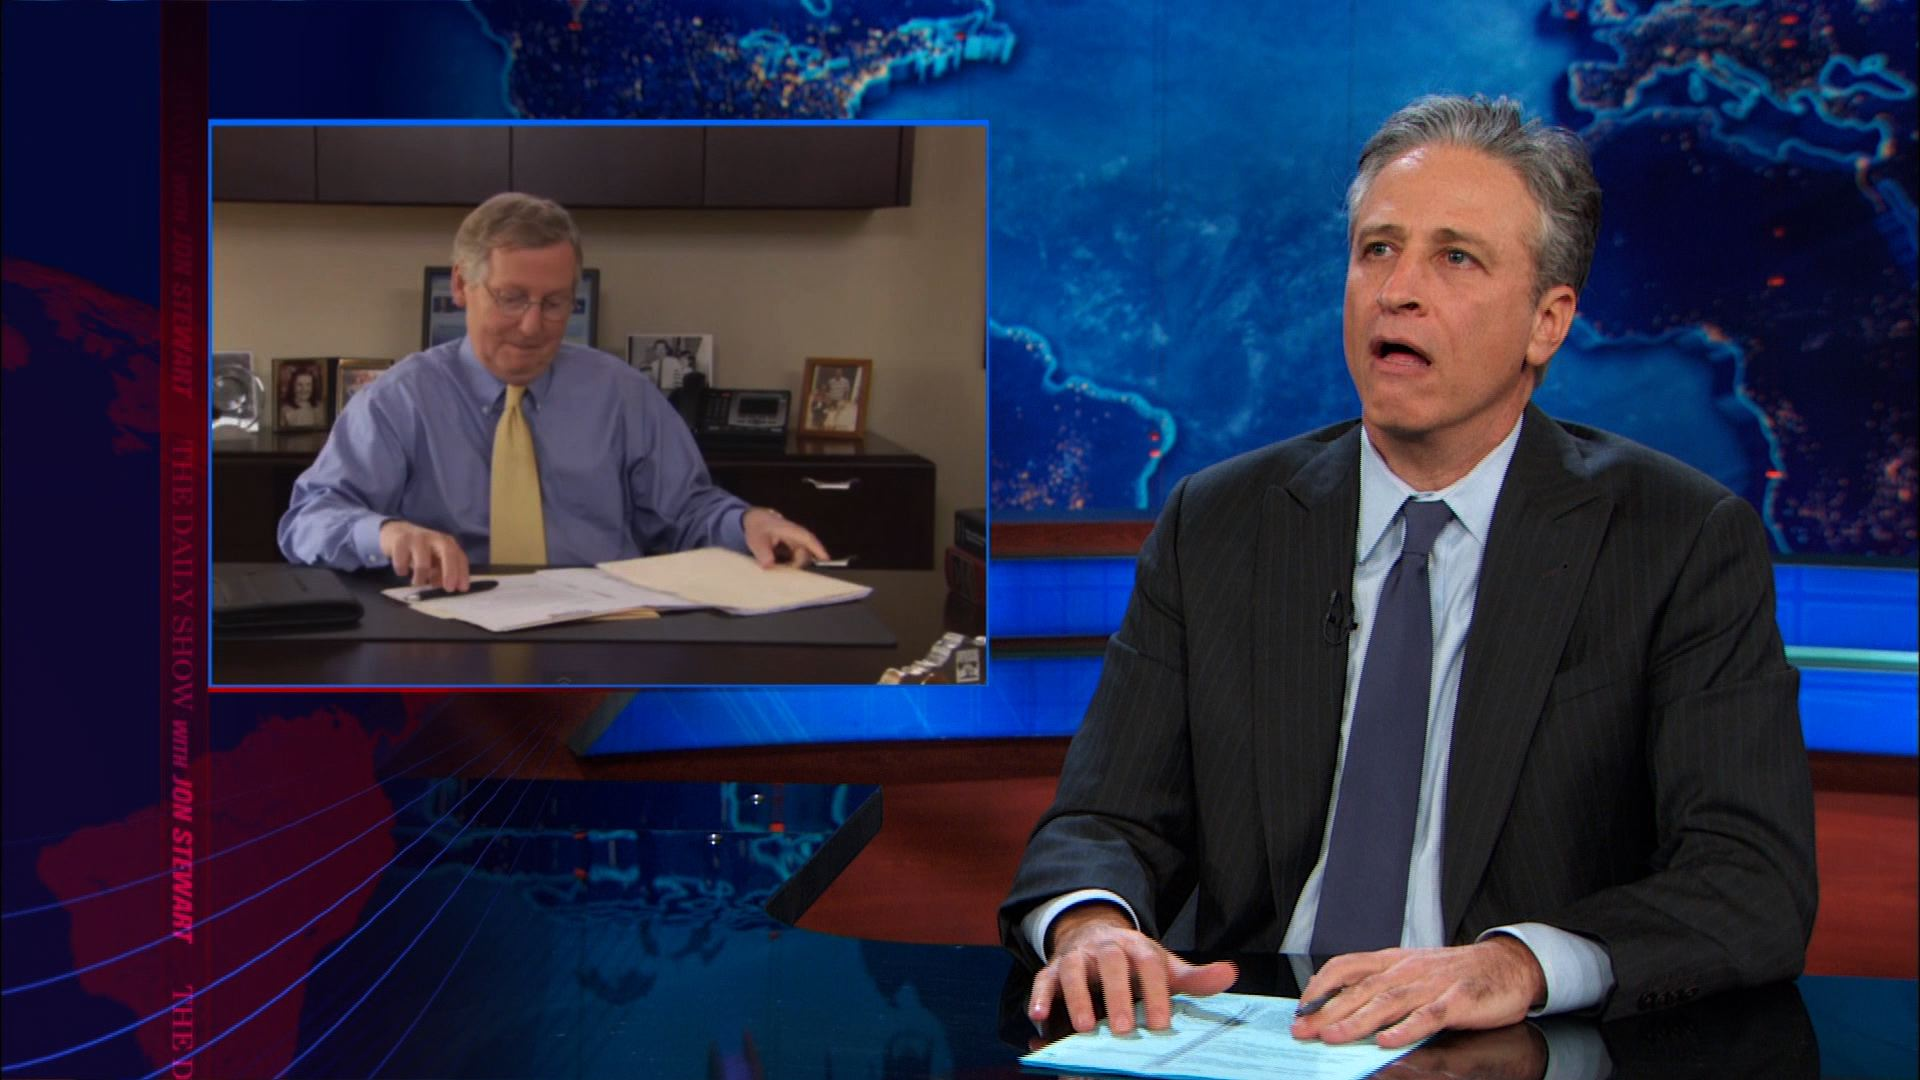 jon-stewart-the-daily-show-mitch-mcconnell